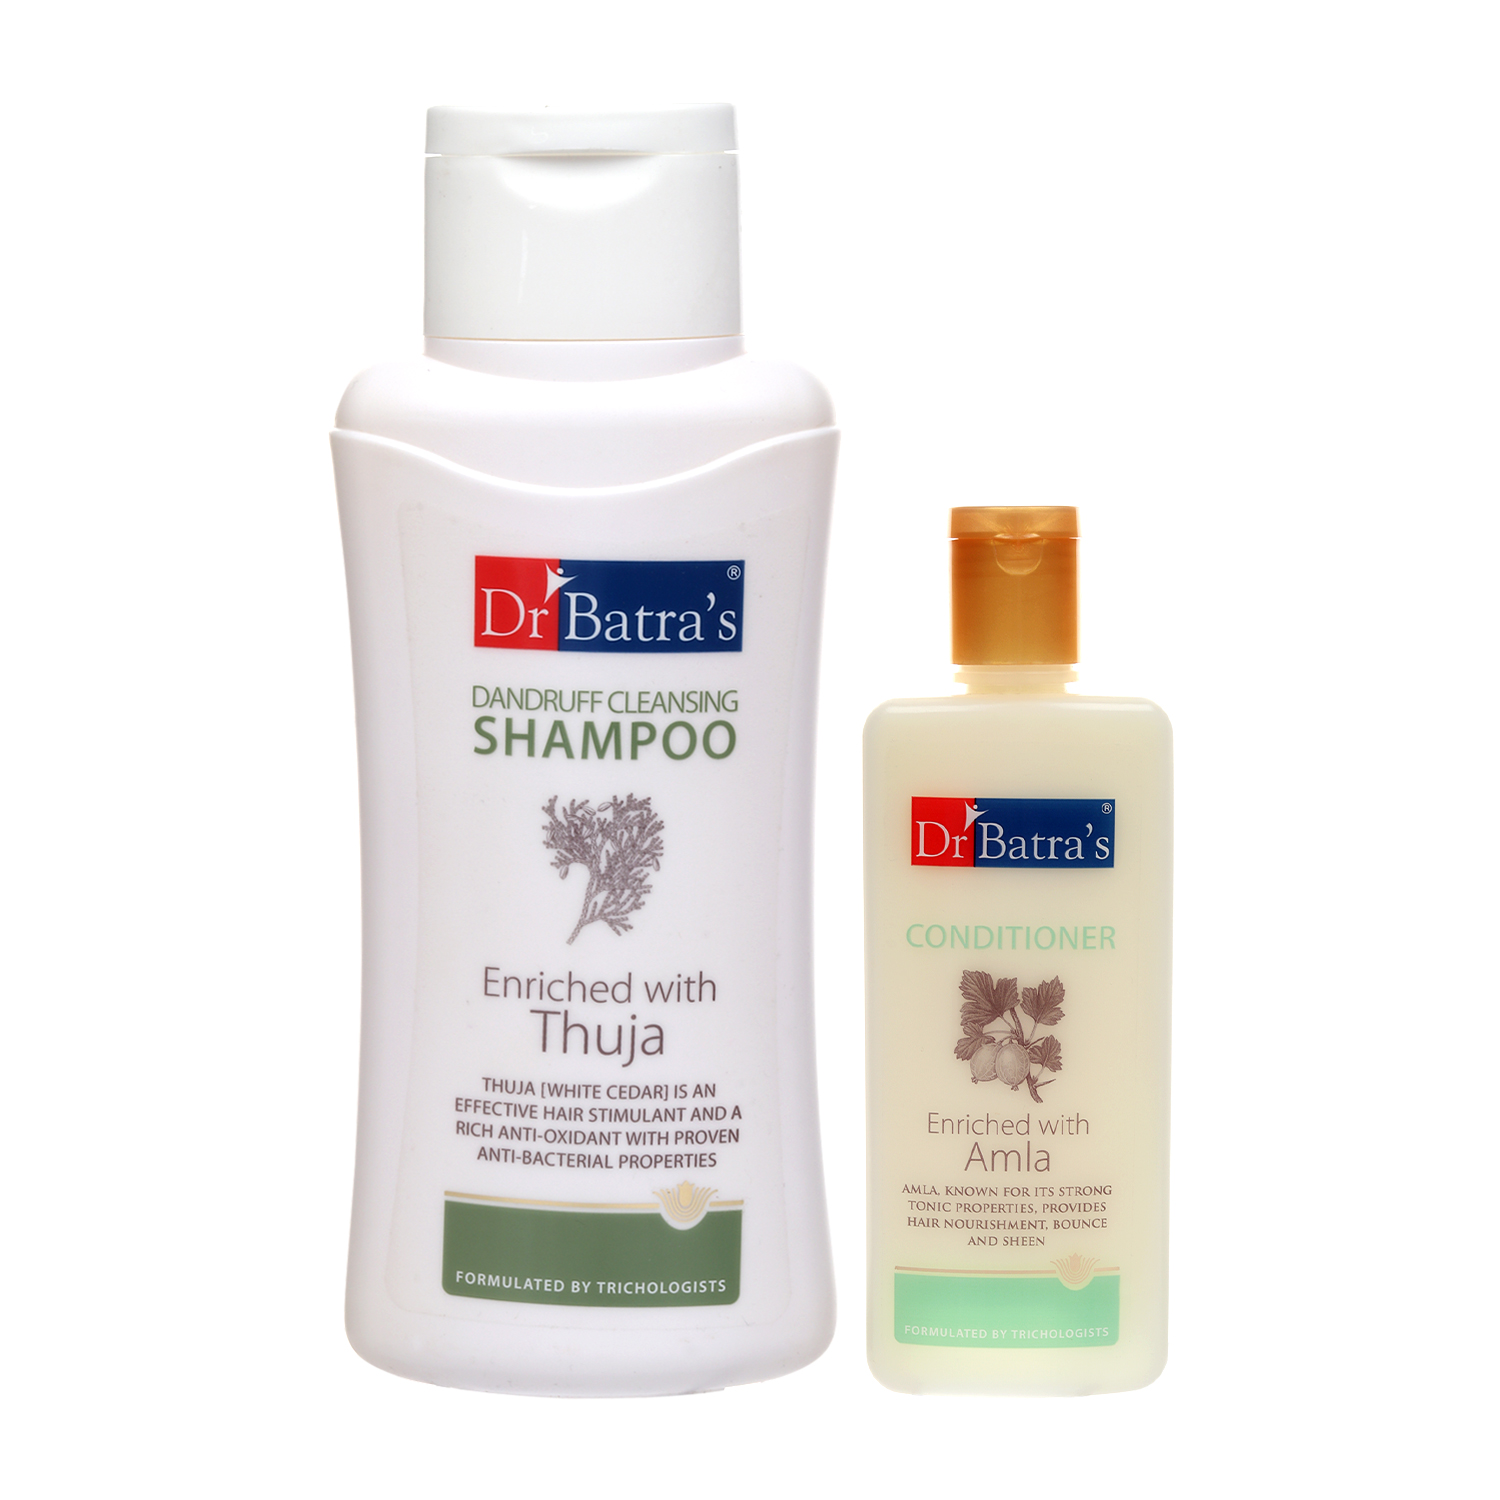 Dr Batra's | Dr Batra's Dandruff cleansing Shampoo 500 ml and Conditioner 200 ml (Pack of 2 Men and Women)